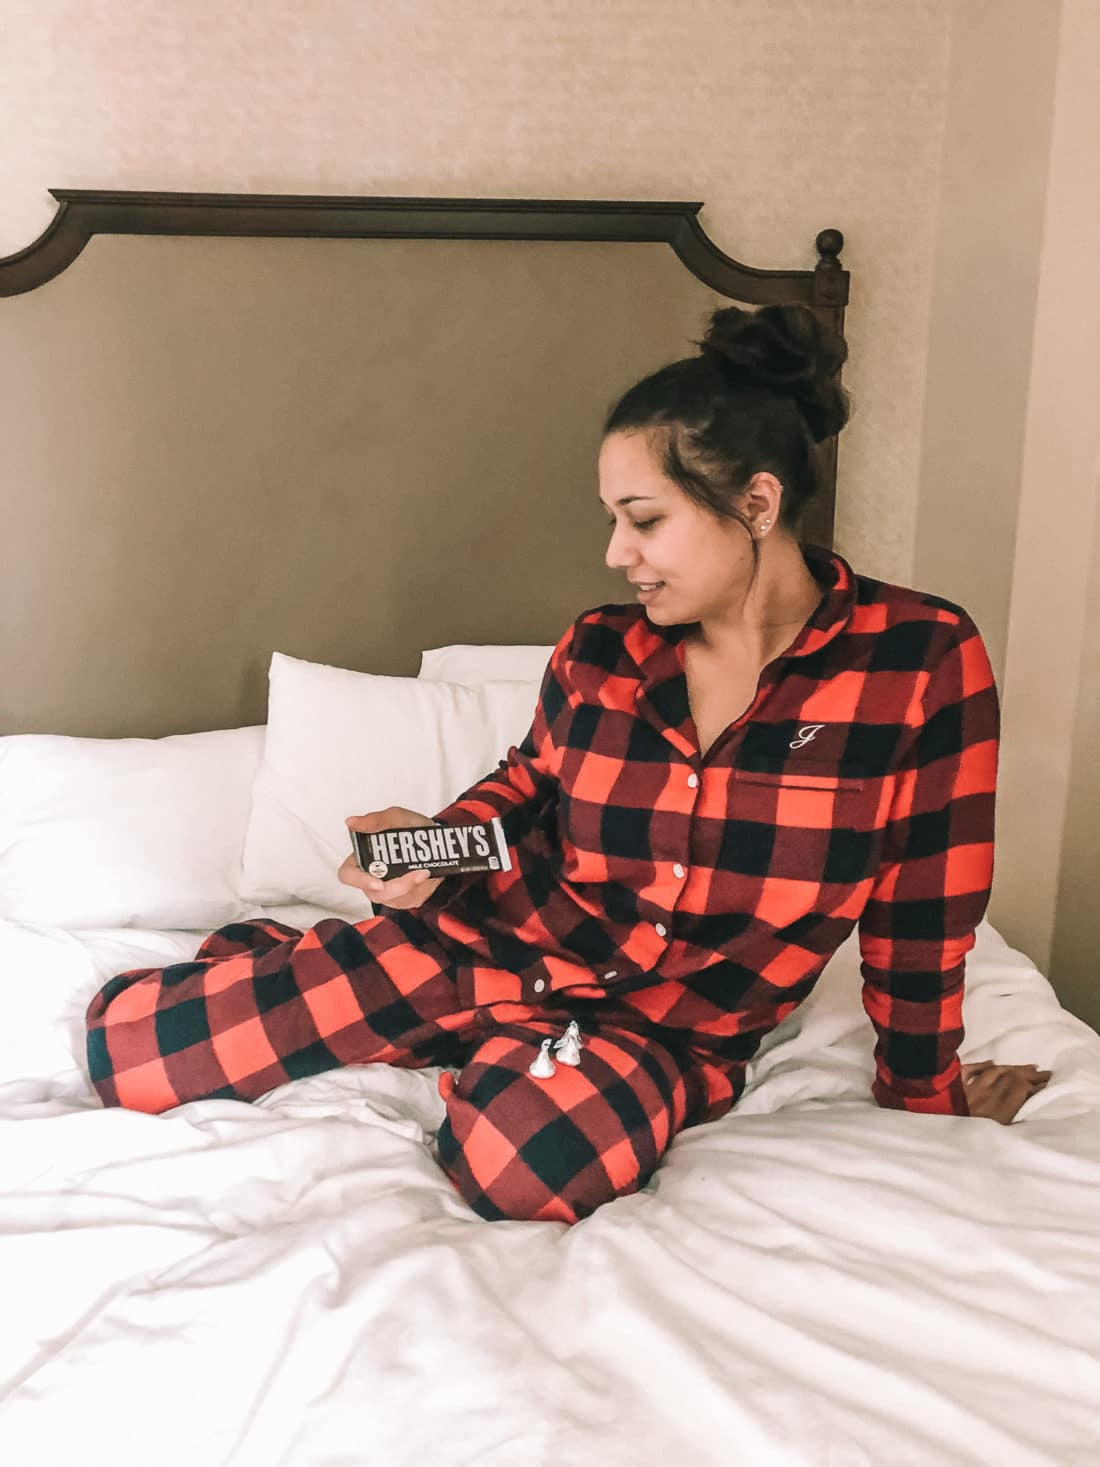 Jay Hershey Hotel PJ's. The Hotel Hershey is a luxury hotel located in Hershey, PA. The Double Queen room offers a luxry stay for up to 4 people.